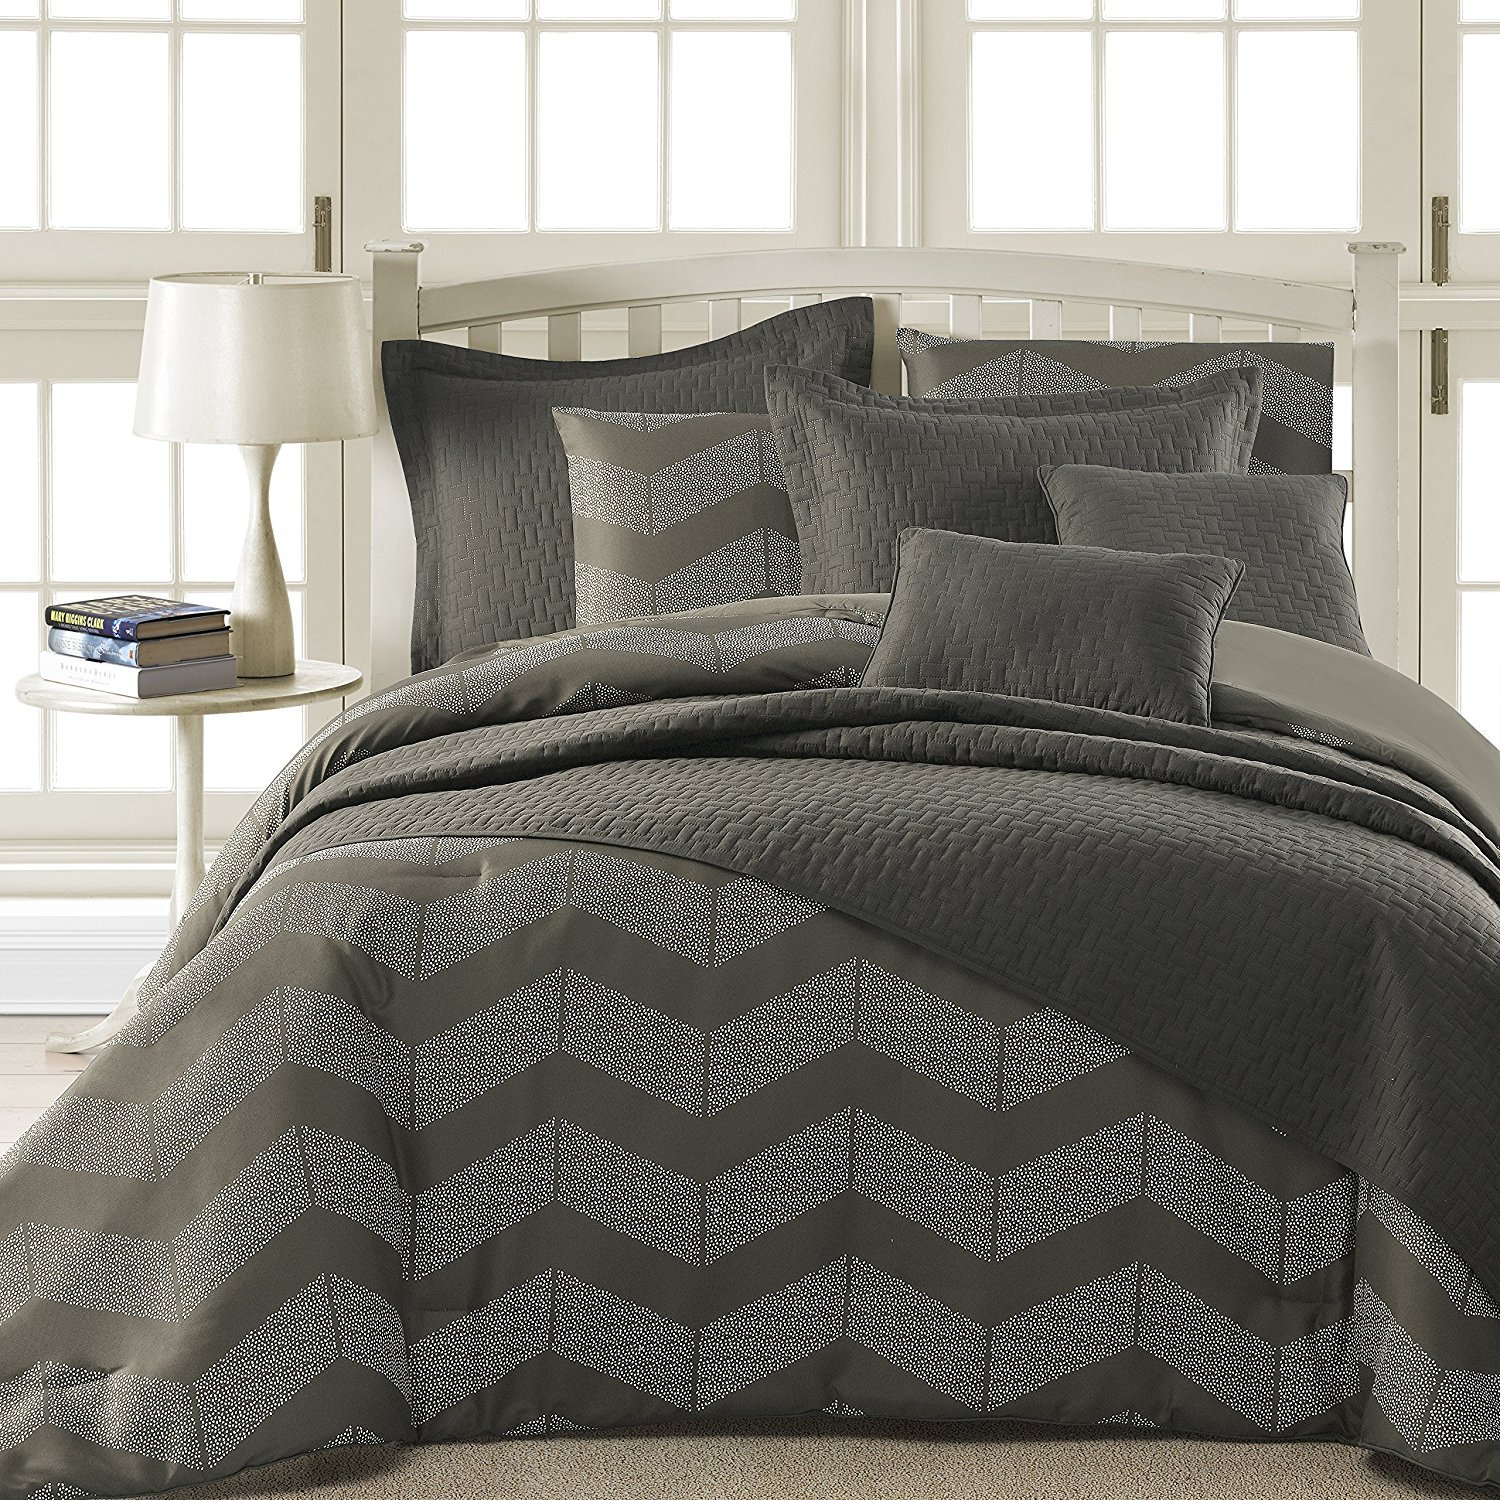 Comfy Bedding Spot Chevron Microfiber 5-Piece Comforter Set (King 5-piece, Grey